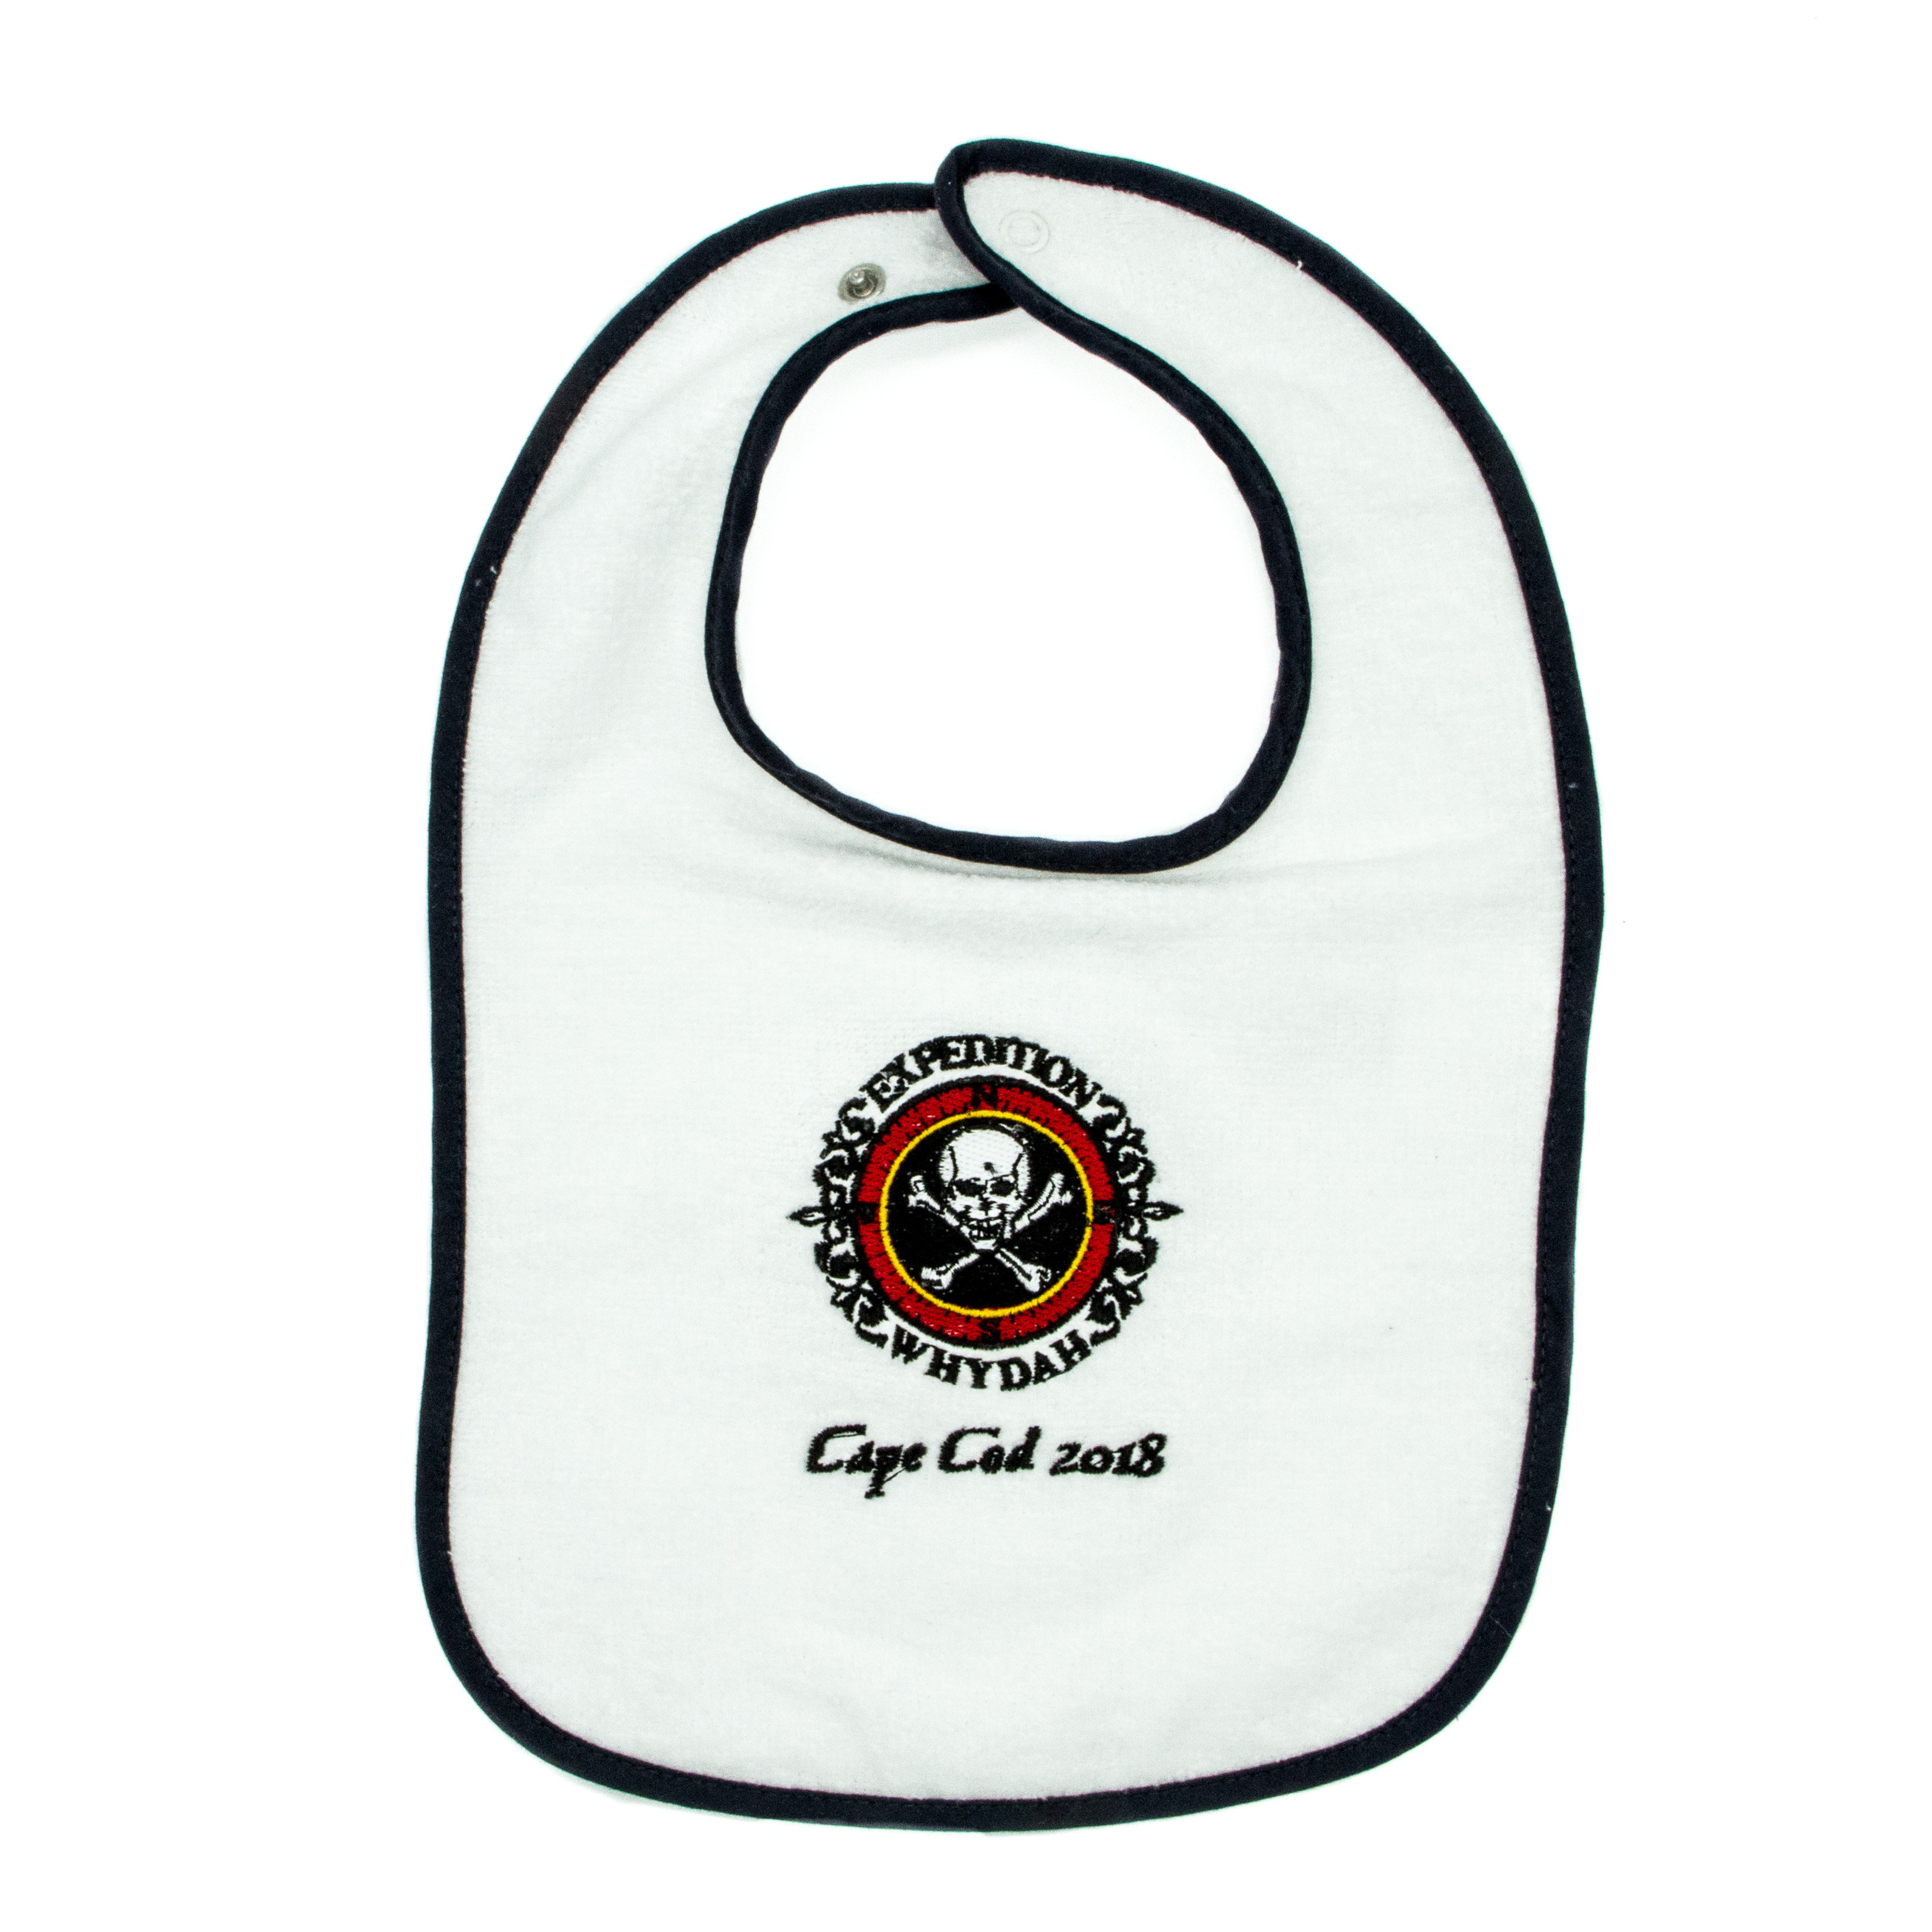 Expedition Whydah Baby Bib 00017